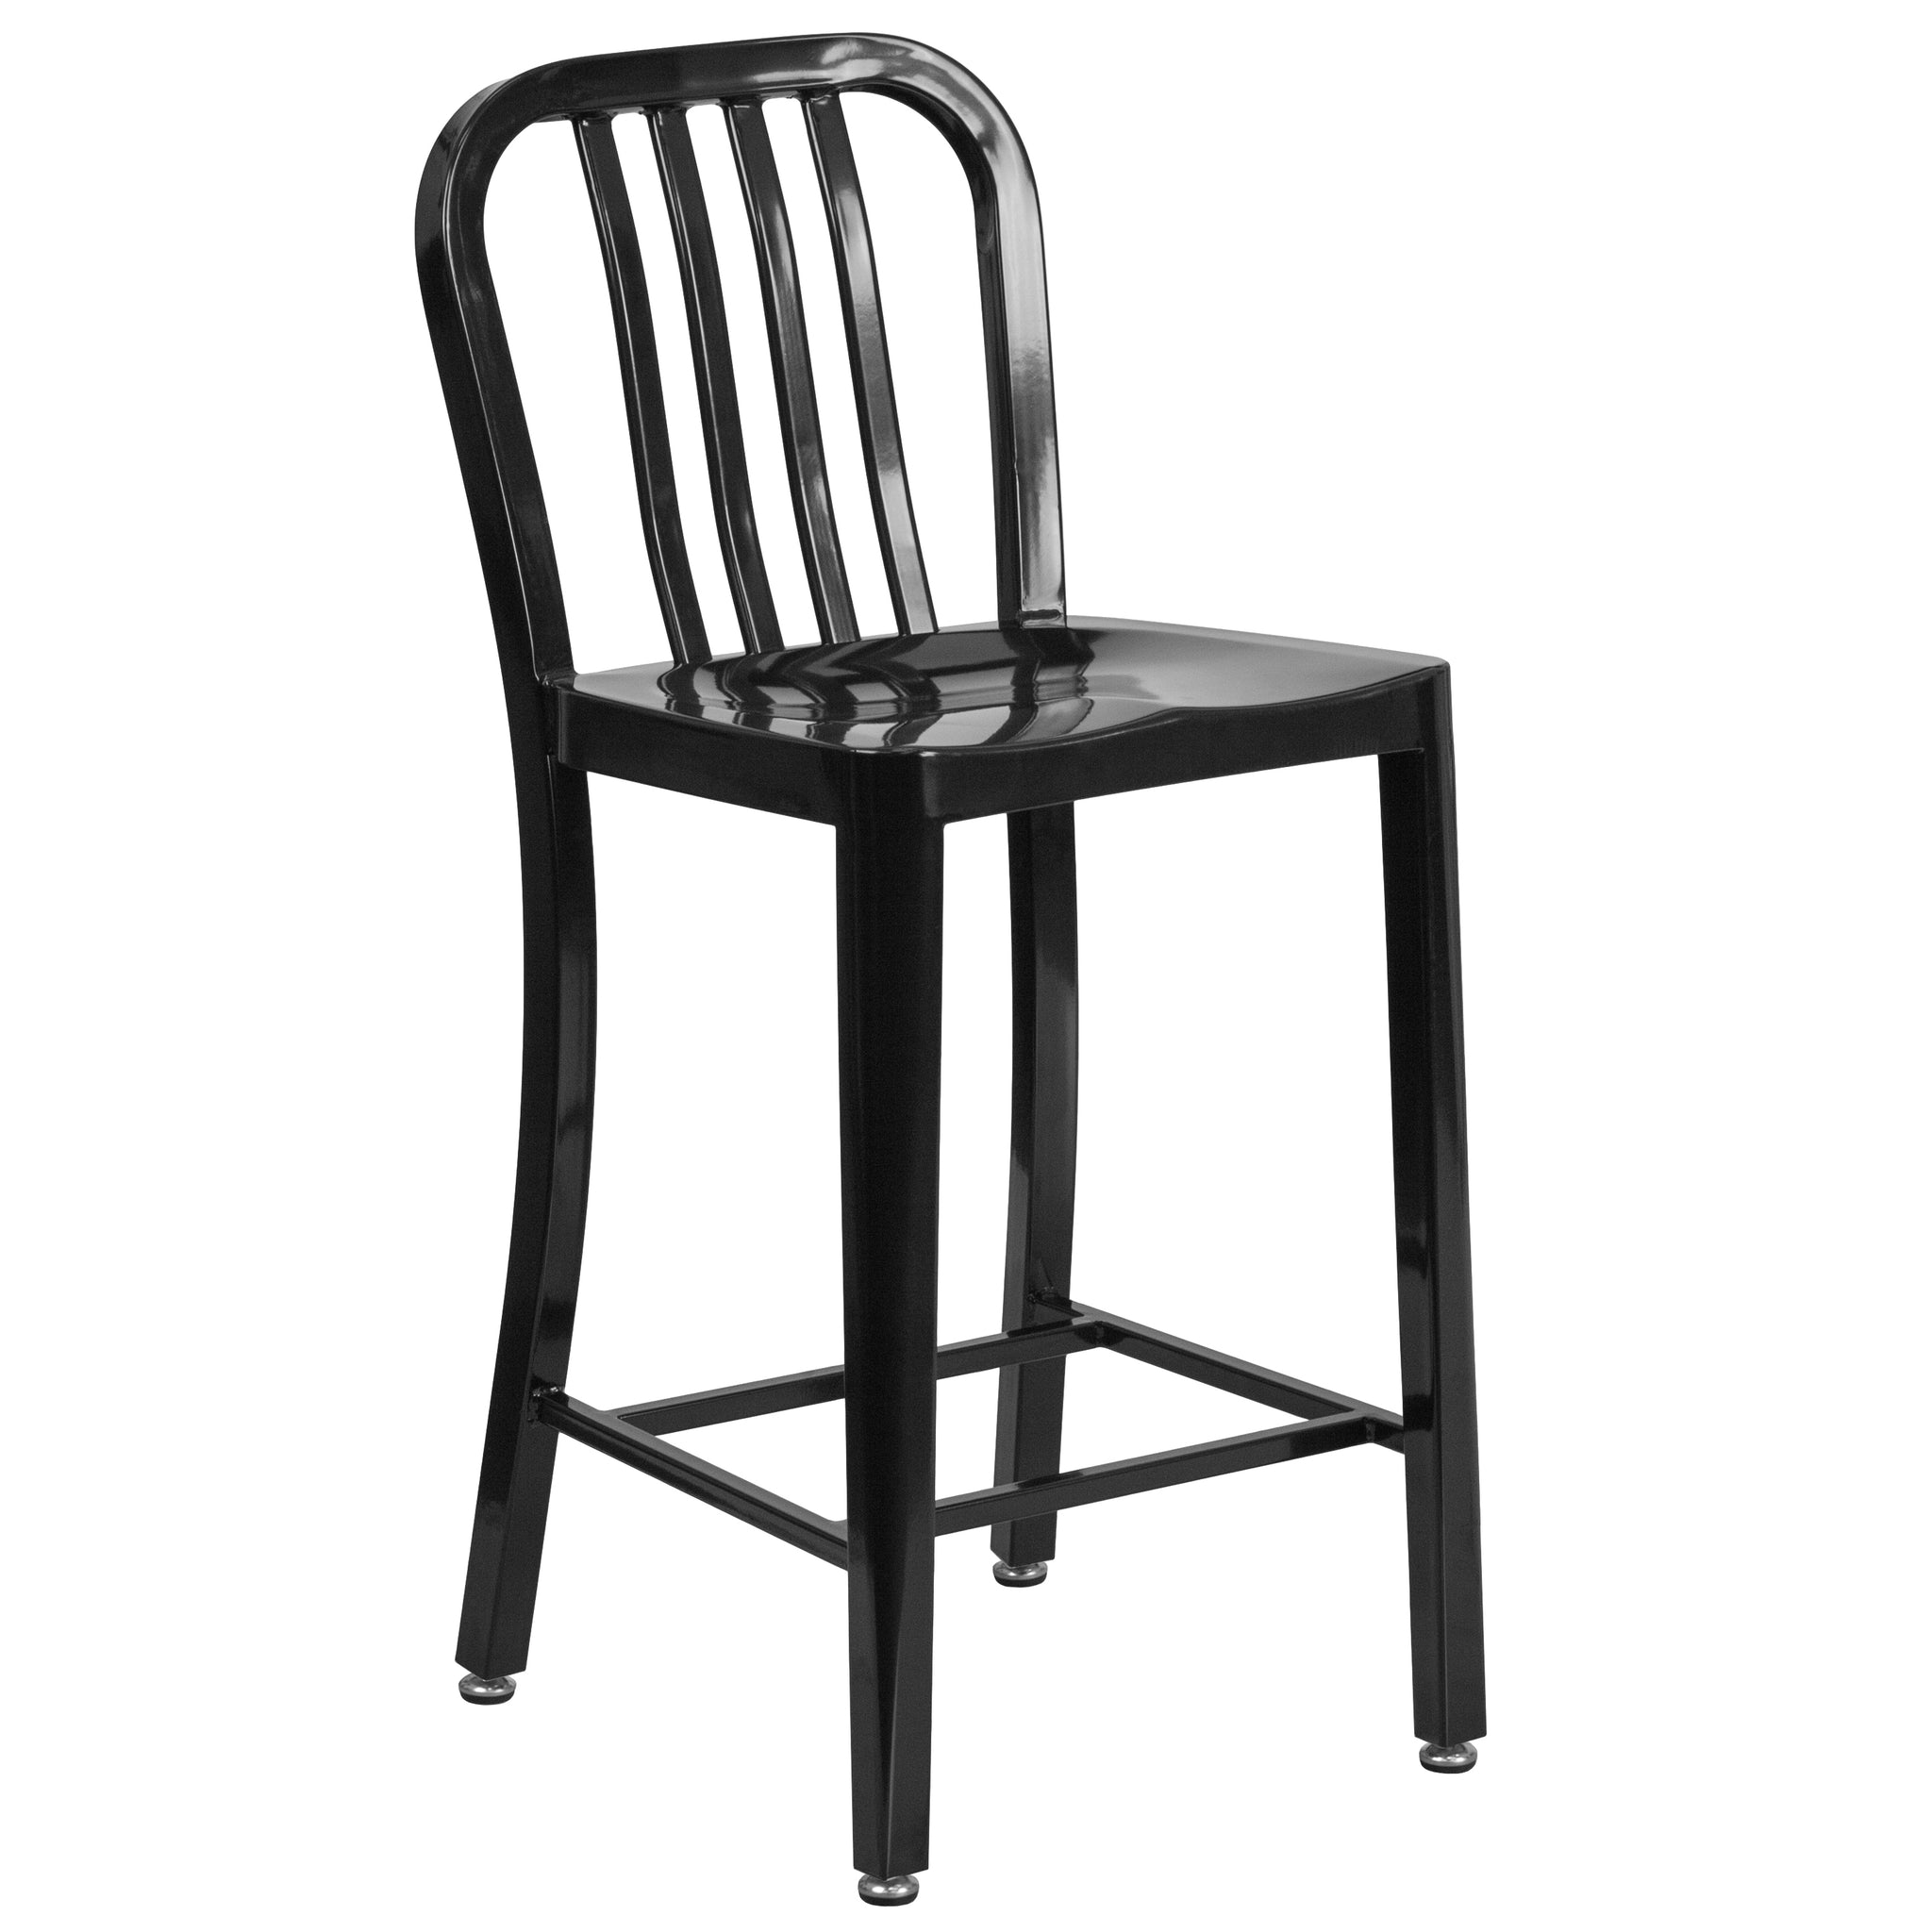 24'' High Metal Indoor-Outdoor Counter Height Stool with Vertical Slat Back: Black